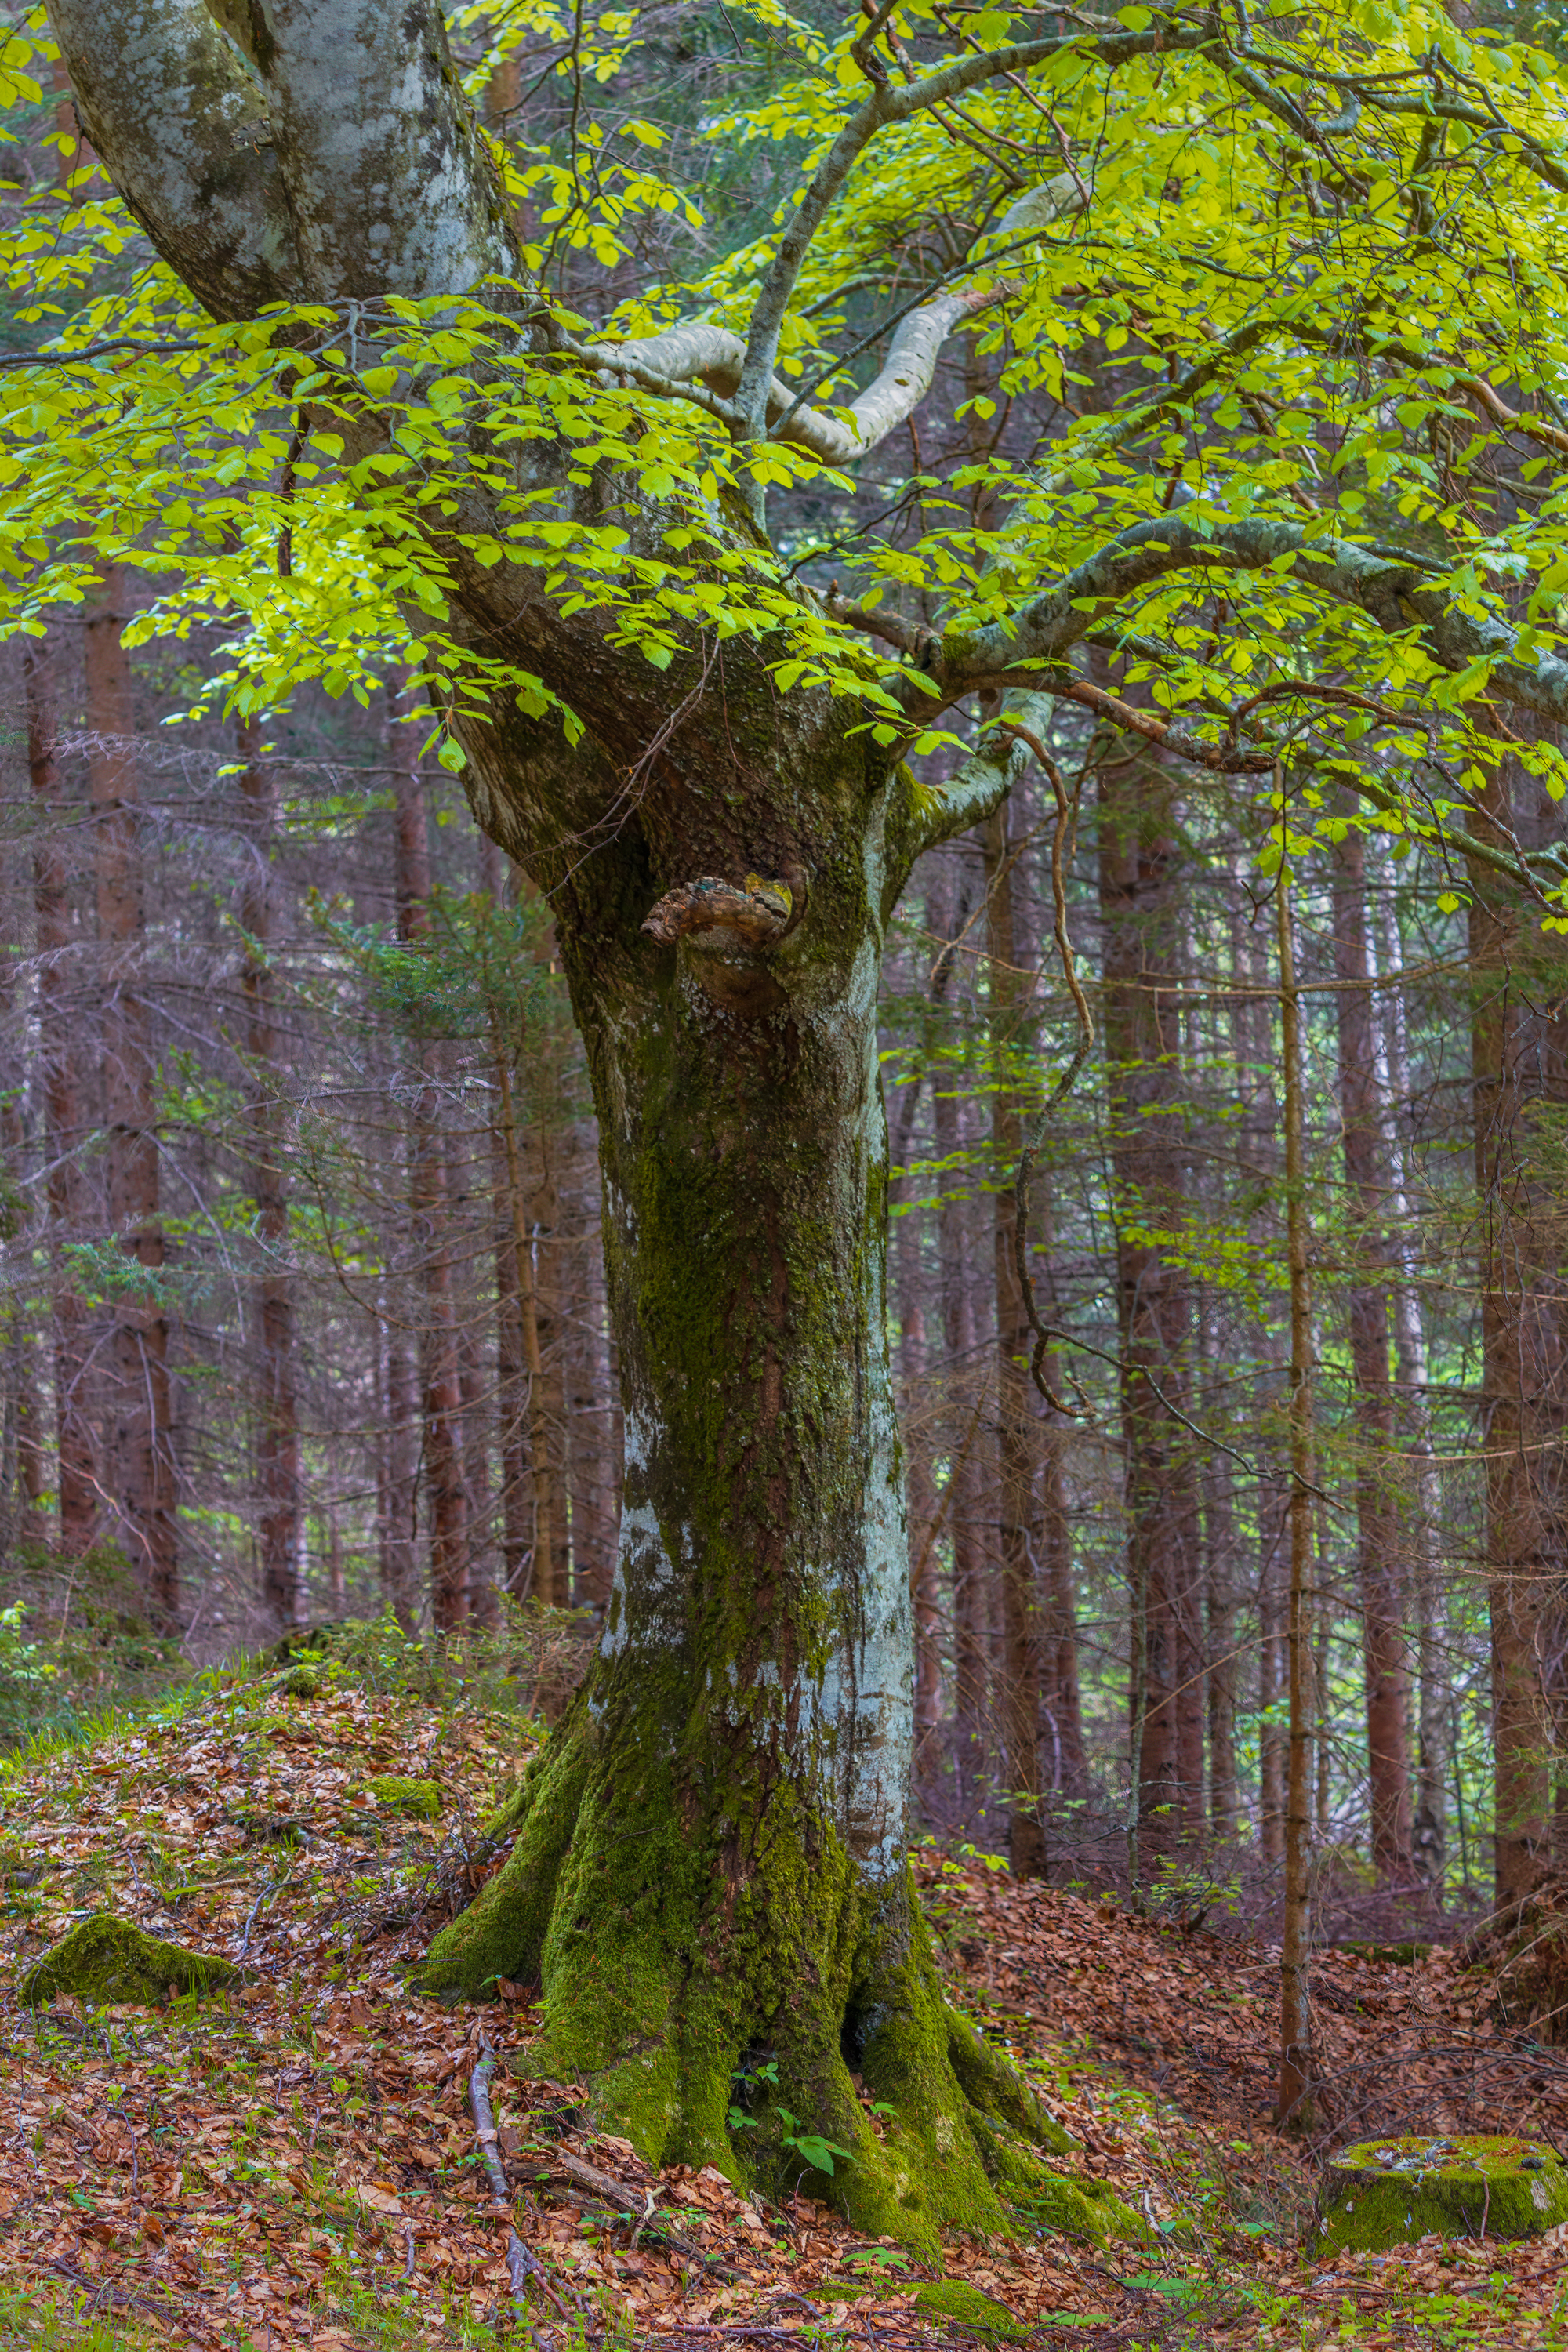 Hiking, Wild Camping & Alpenglow : old beech tree with fresh leaves